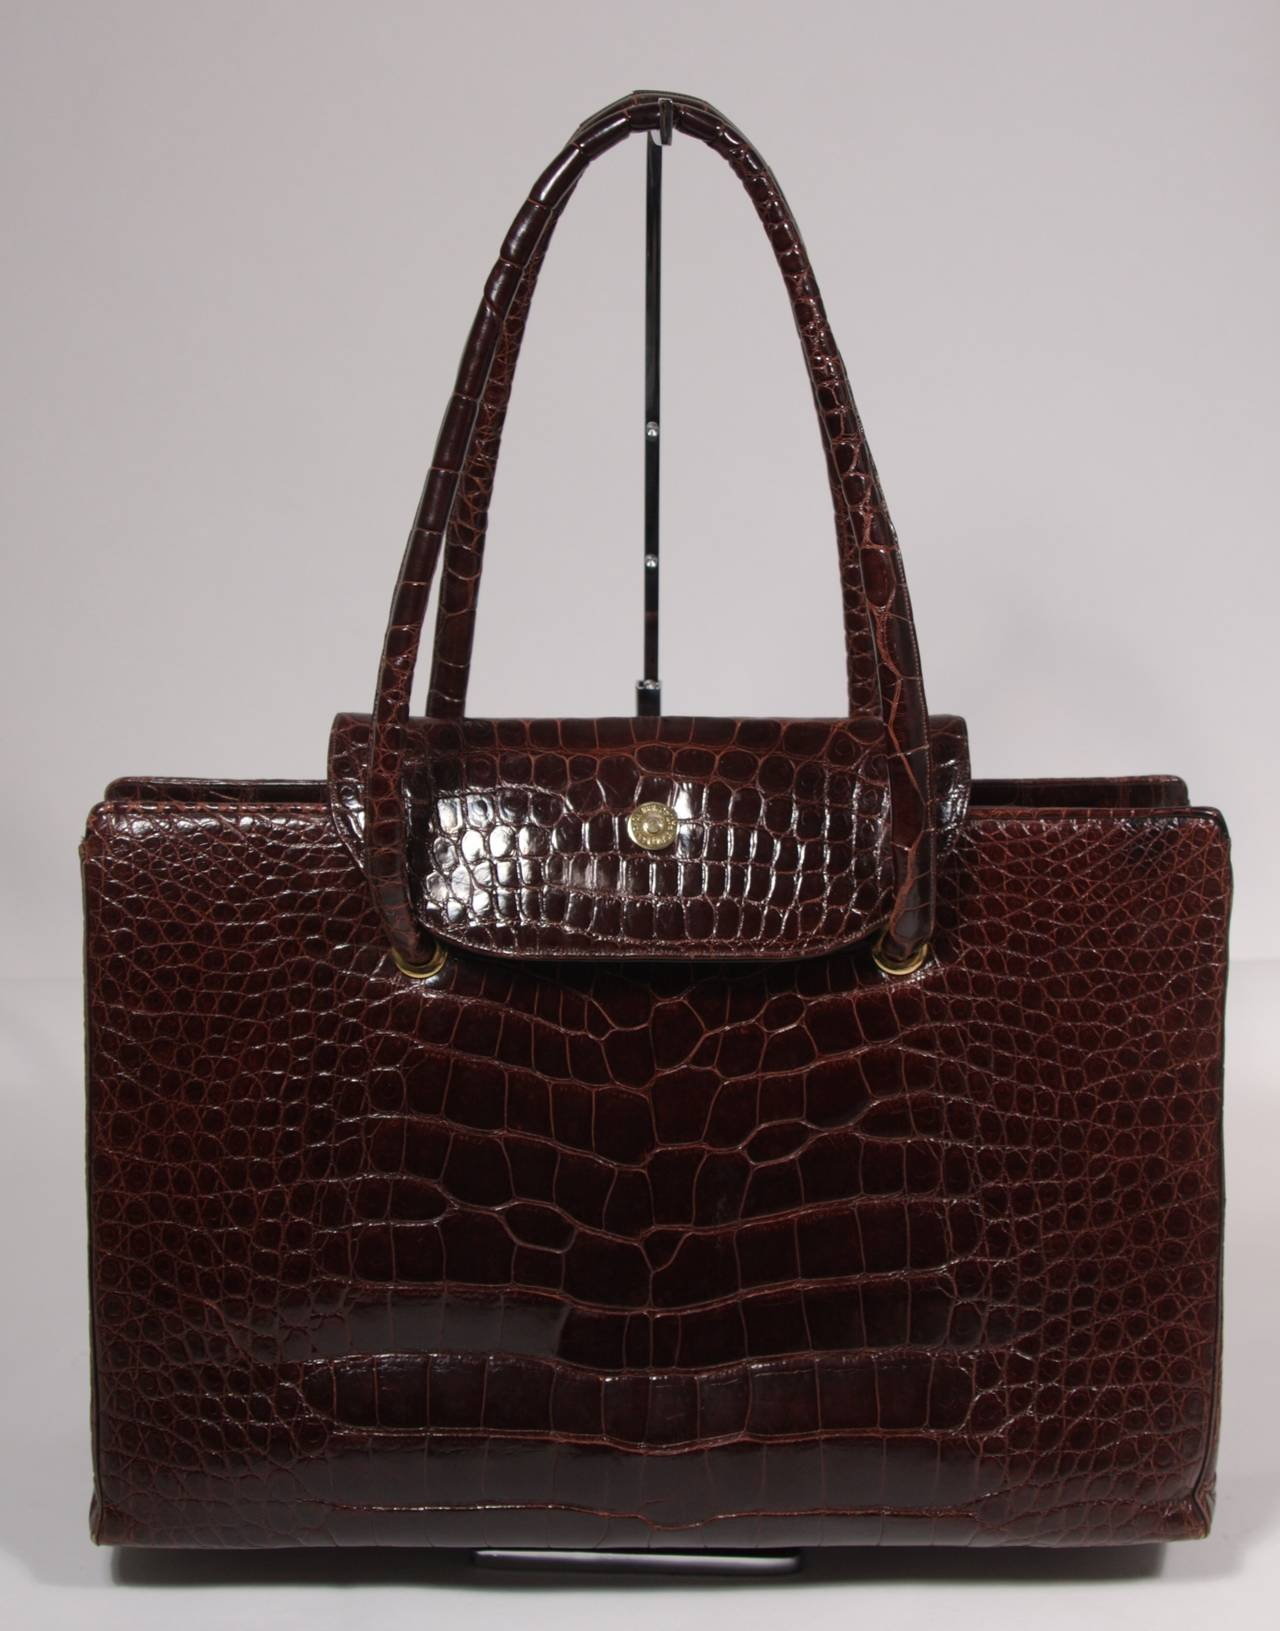 Judith Leiber Extra Large Chocolate Crocodile Shoulder Bag with Snap Top 5